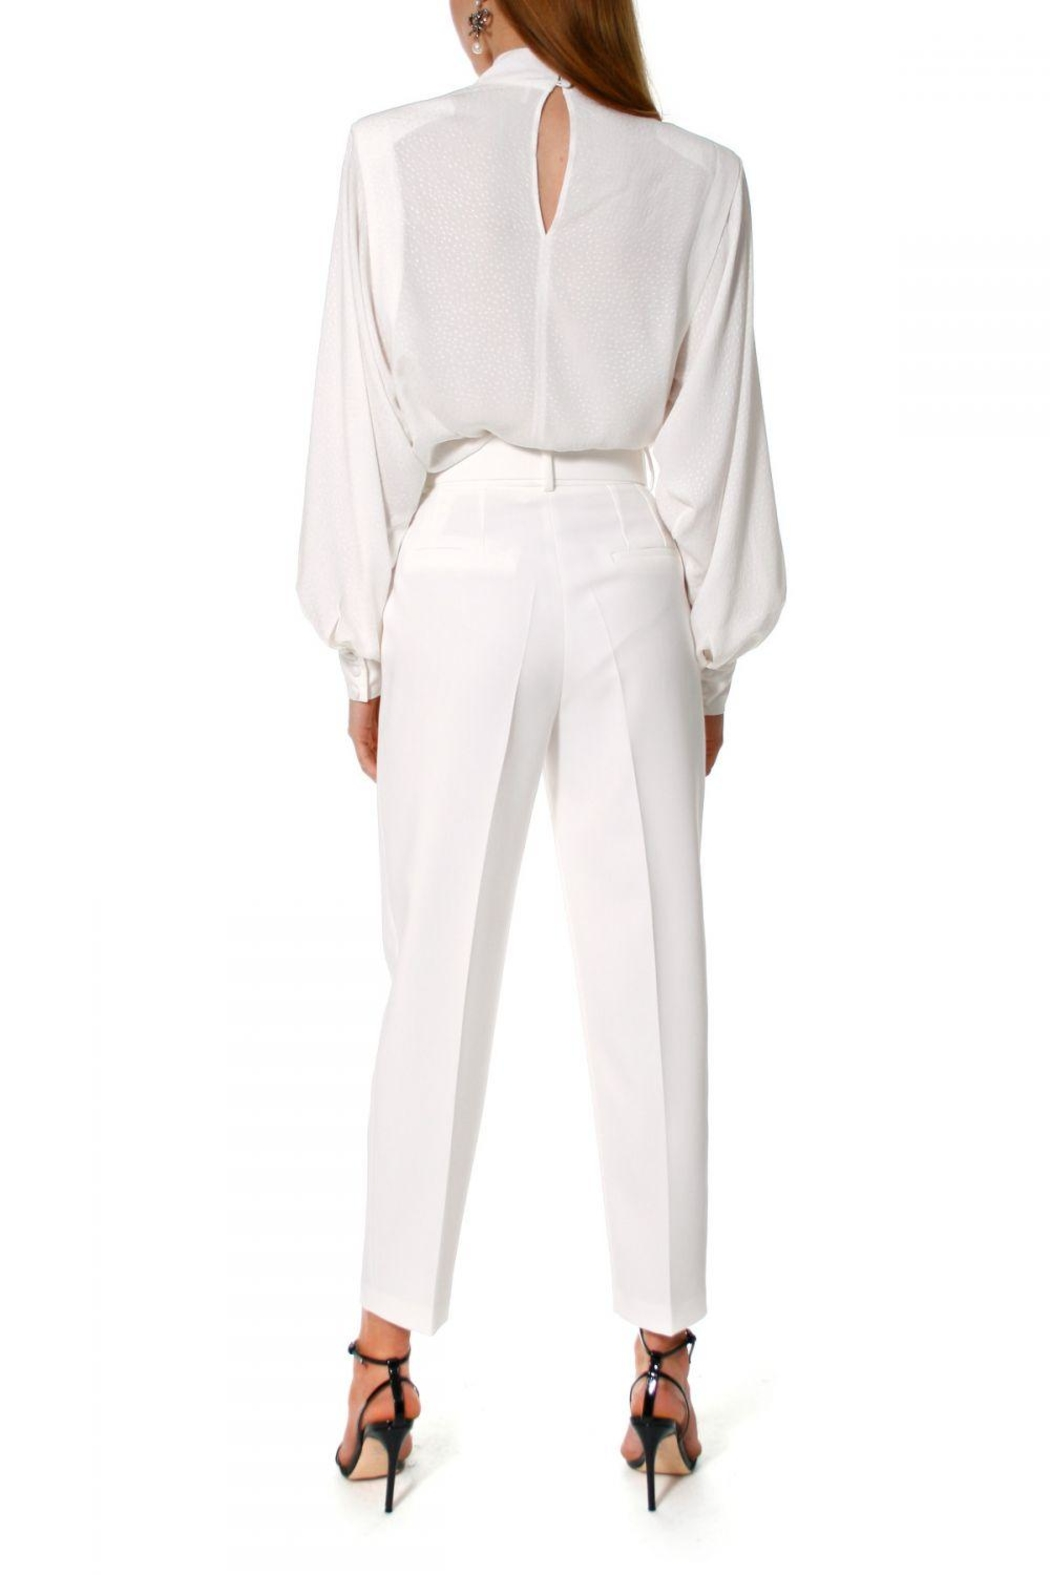 AGGI Pants Tracey Cloud Dancer - Front Full Image